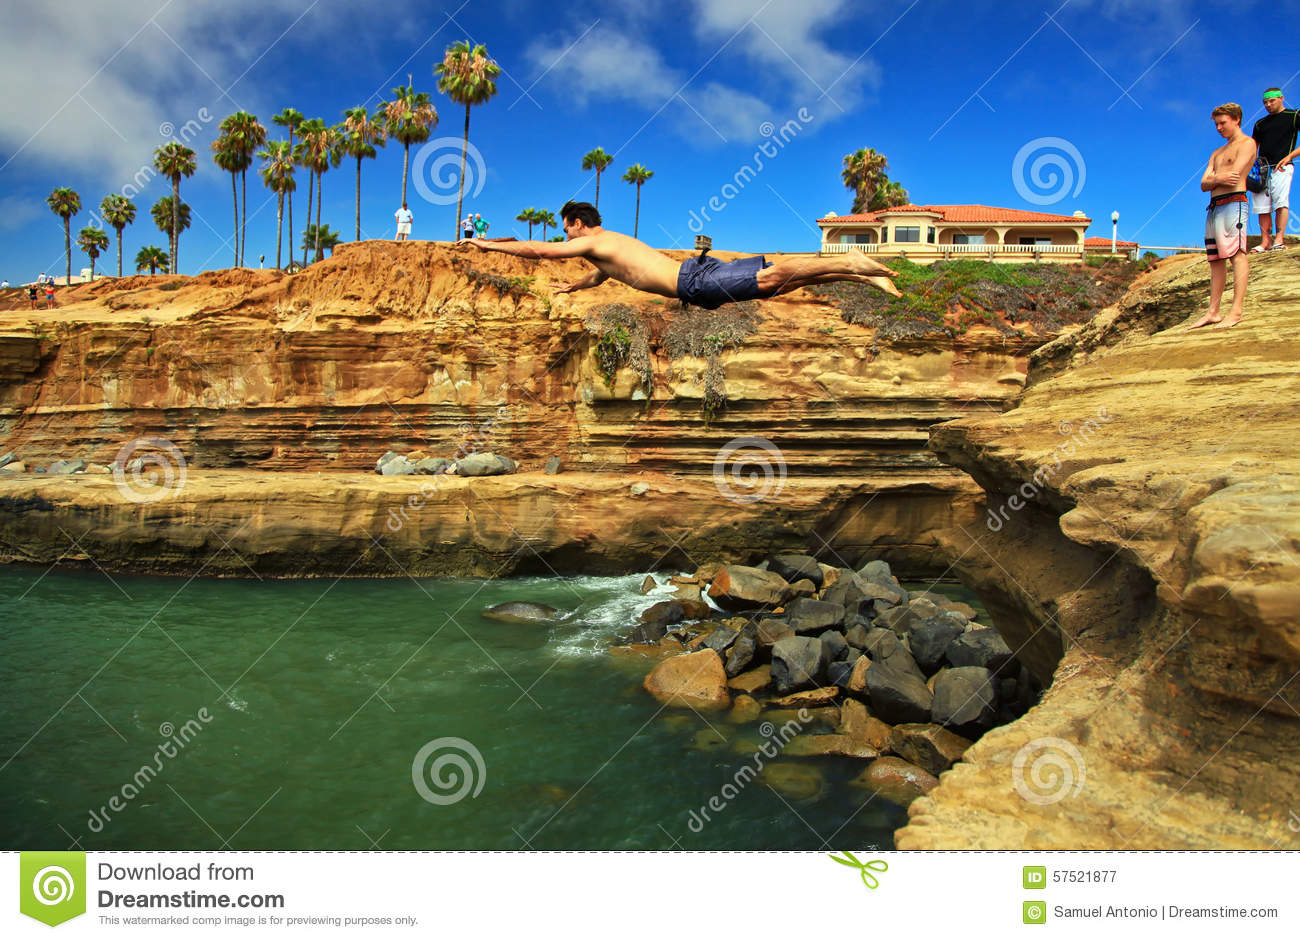 Ung man Cliff Diving in i vatten, solnedgångklippor, Point Loma, San Diego, Kalifornien